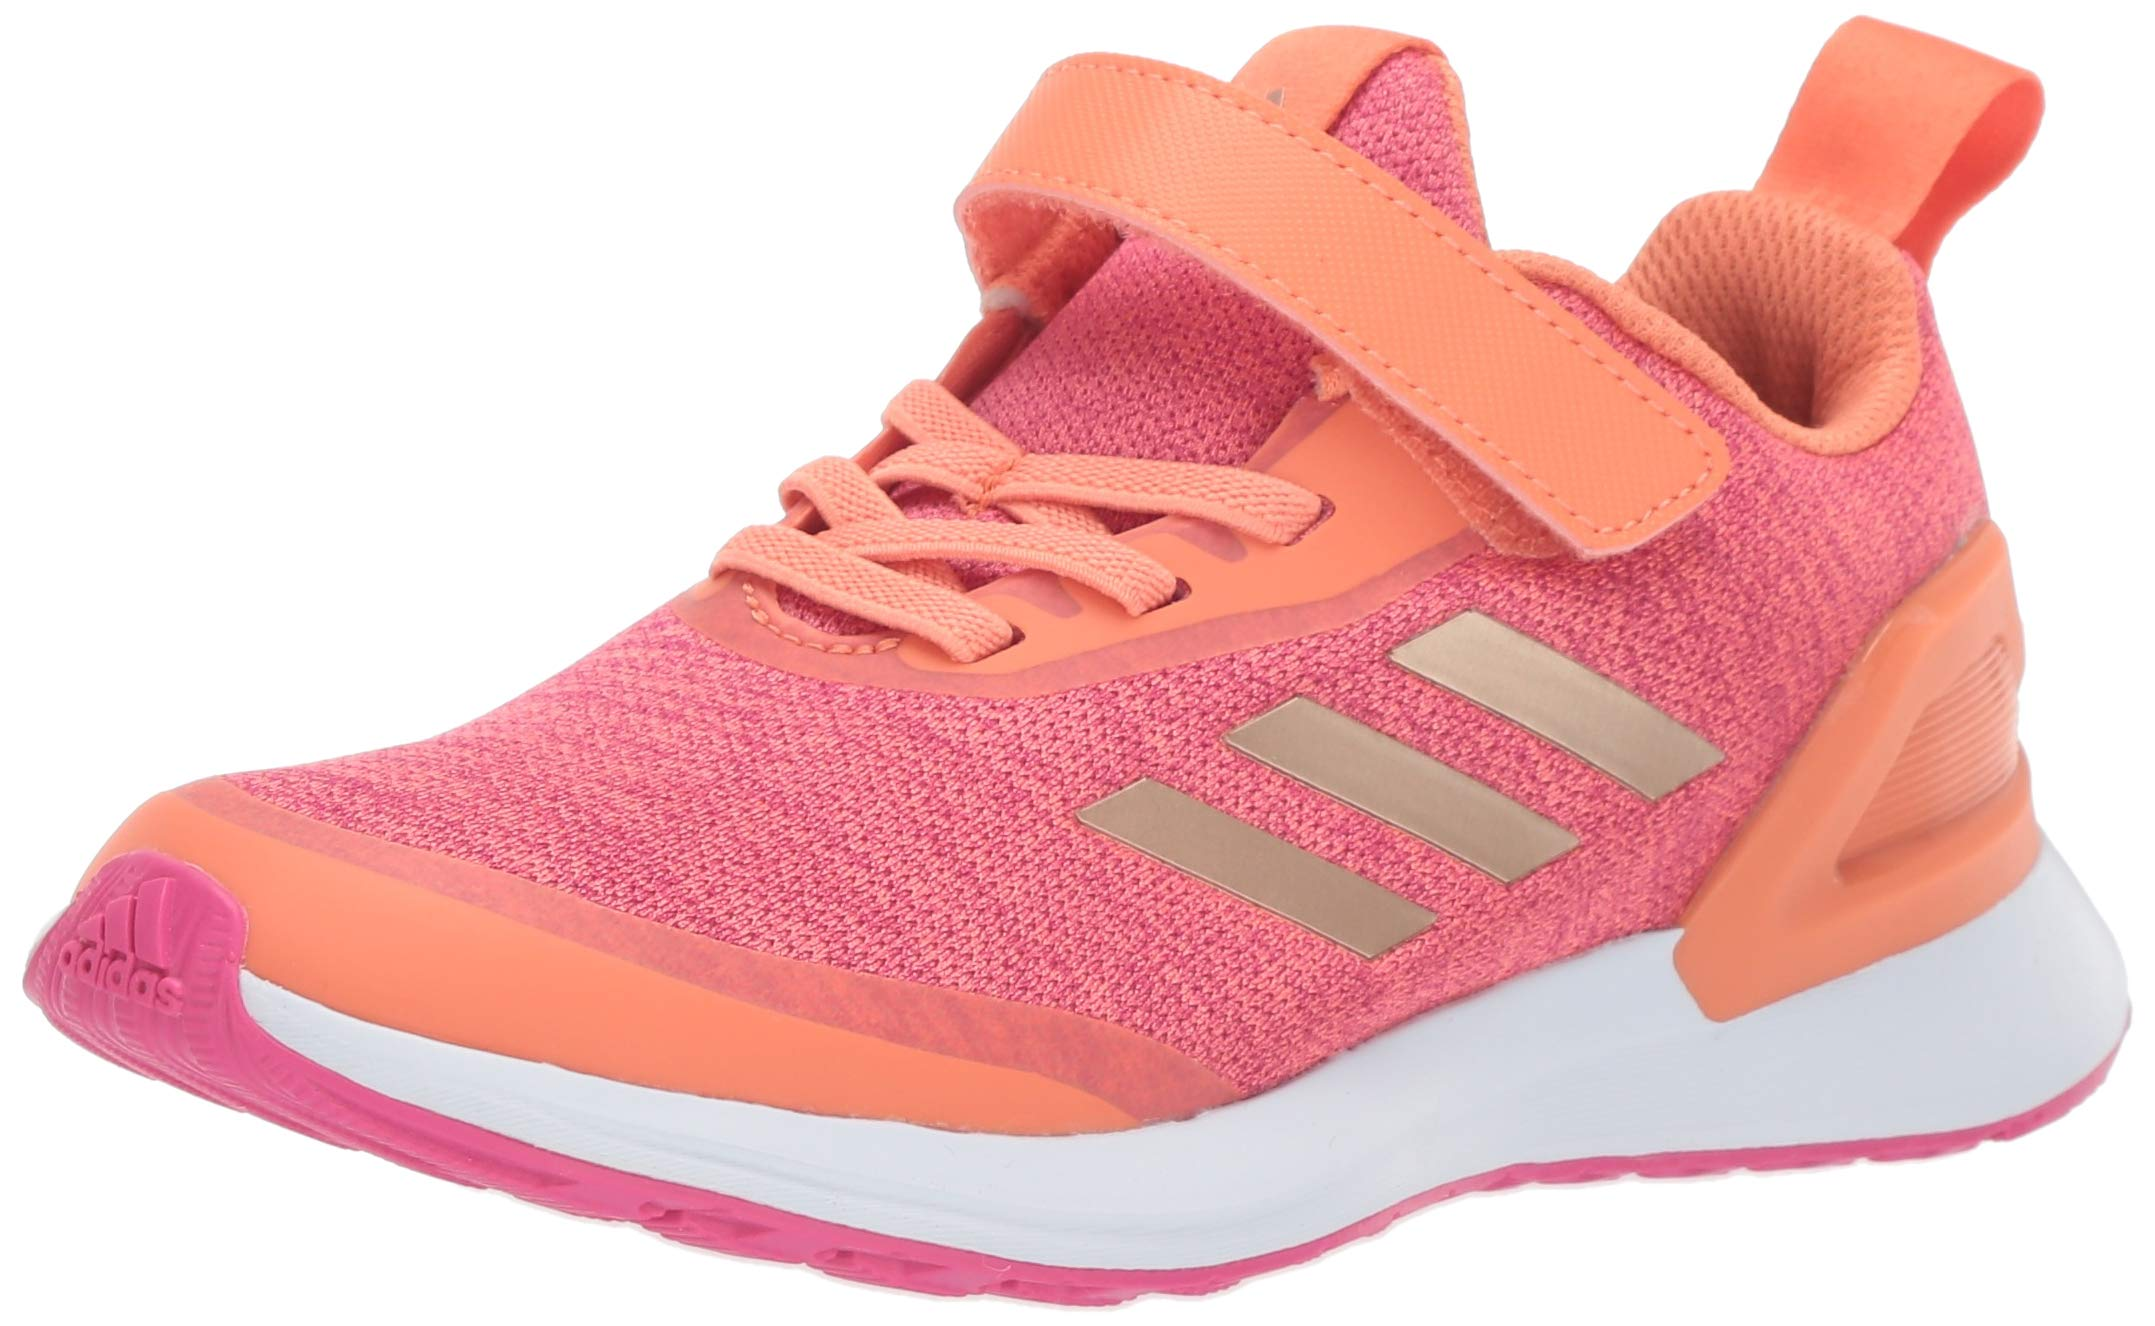 adidas Unisex RapidaRun X EL Running Shoe, Semi Coral/Copper Metallic/Real Magenta, 13K M US Little Kid